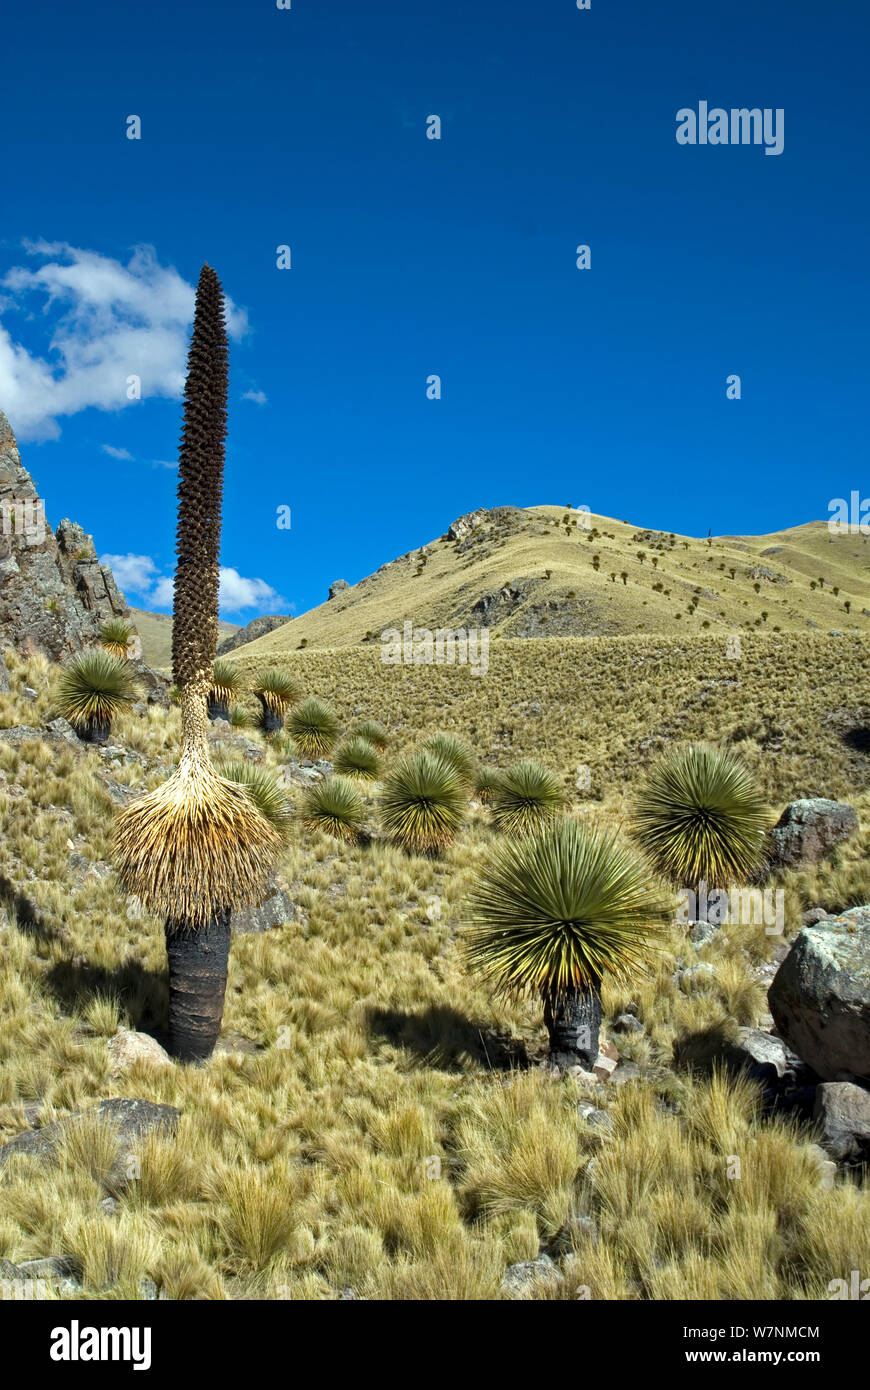 Queen of the Andes (Puya raimondii) forest, Peru. June 2012. Stock Photo